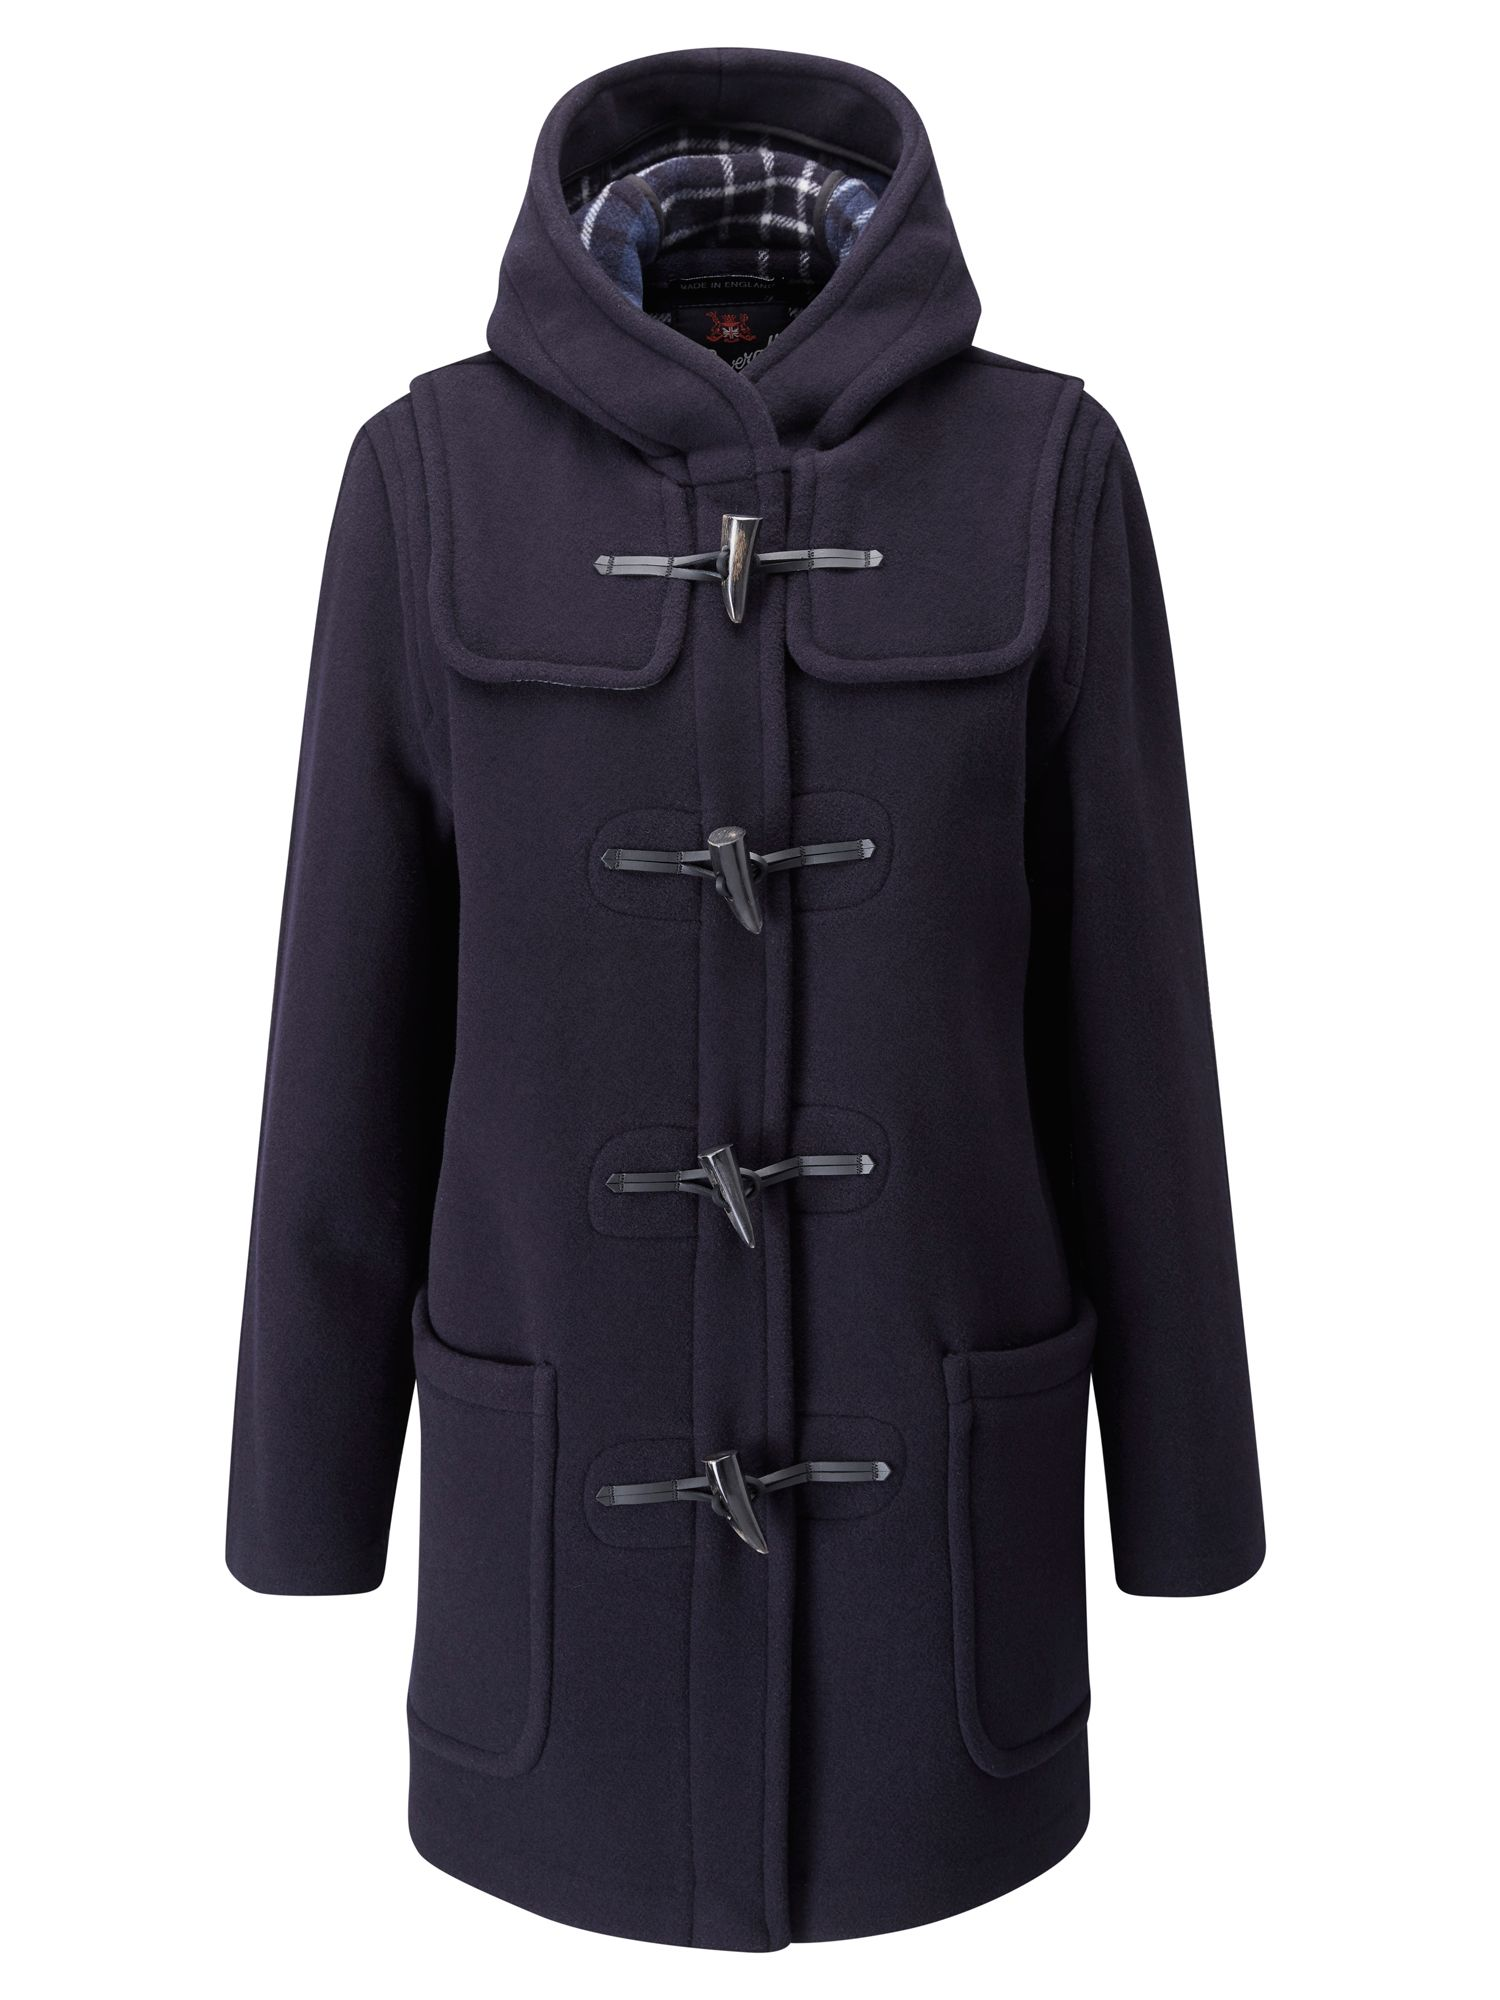 Gloverall Mid Length Original Fit Duffle Coat, Blue